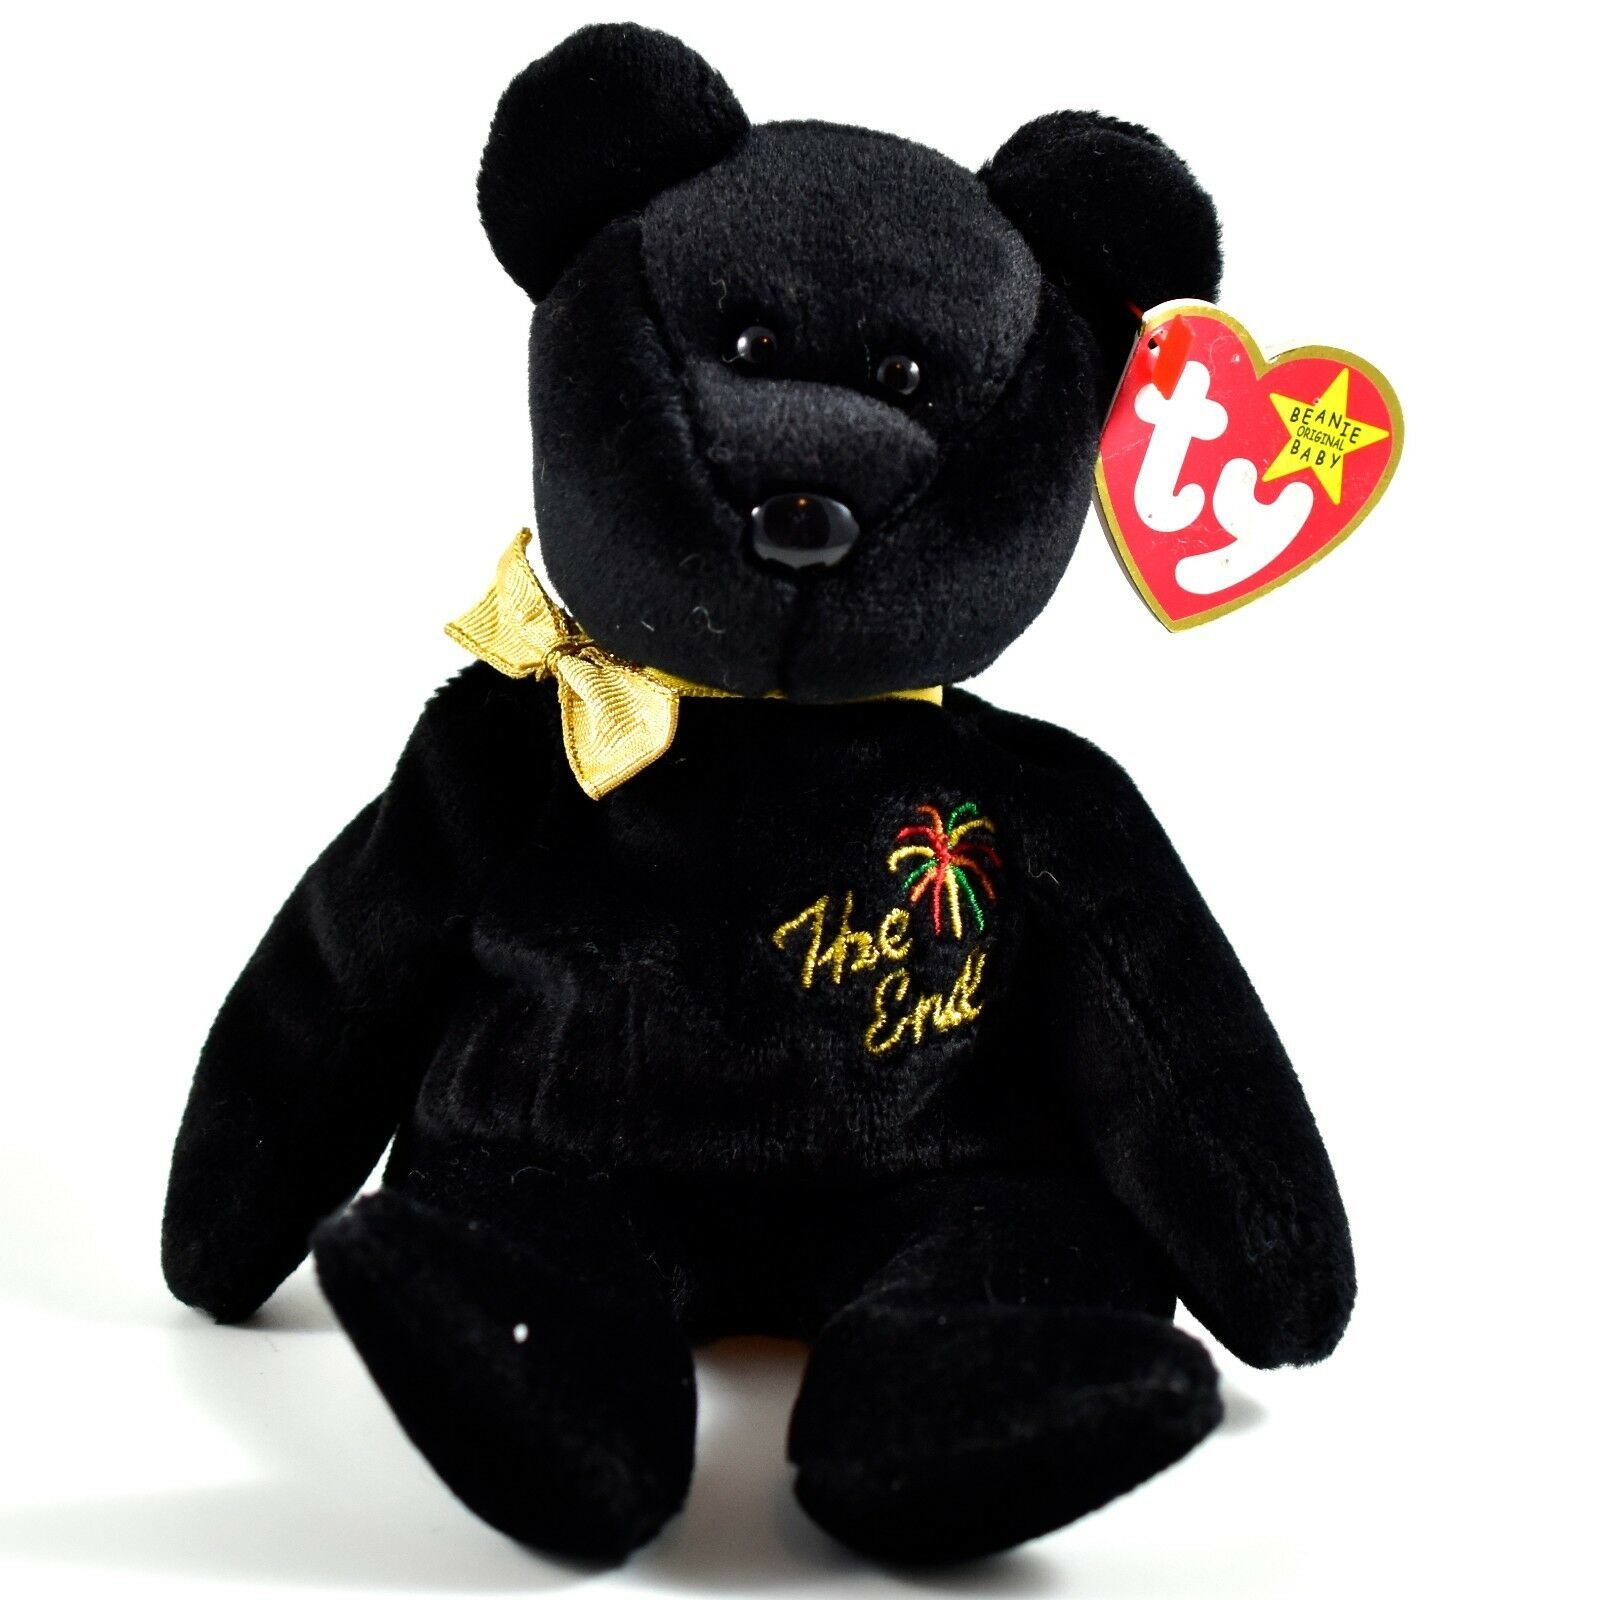 1999 TY Beanie Baby Original The End New Years Teddy Bear Beanbag Plush Toy Doll